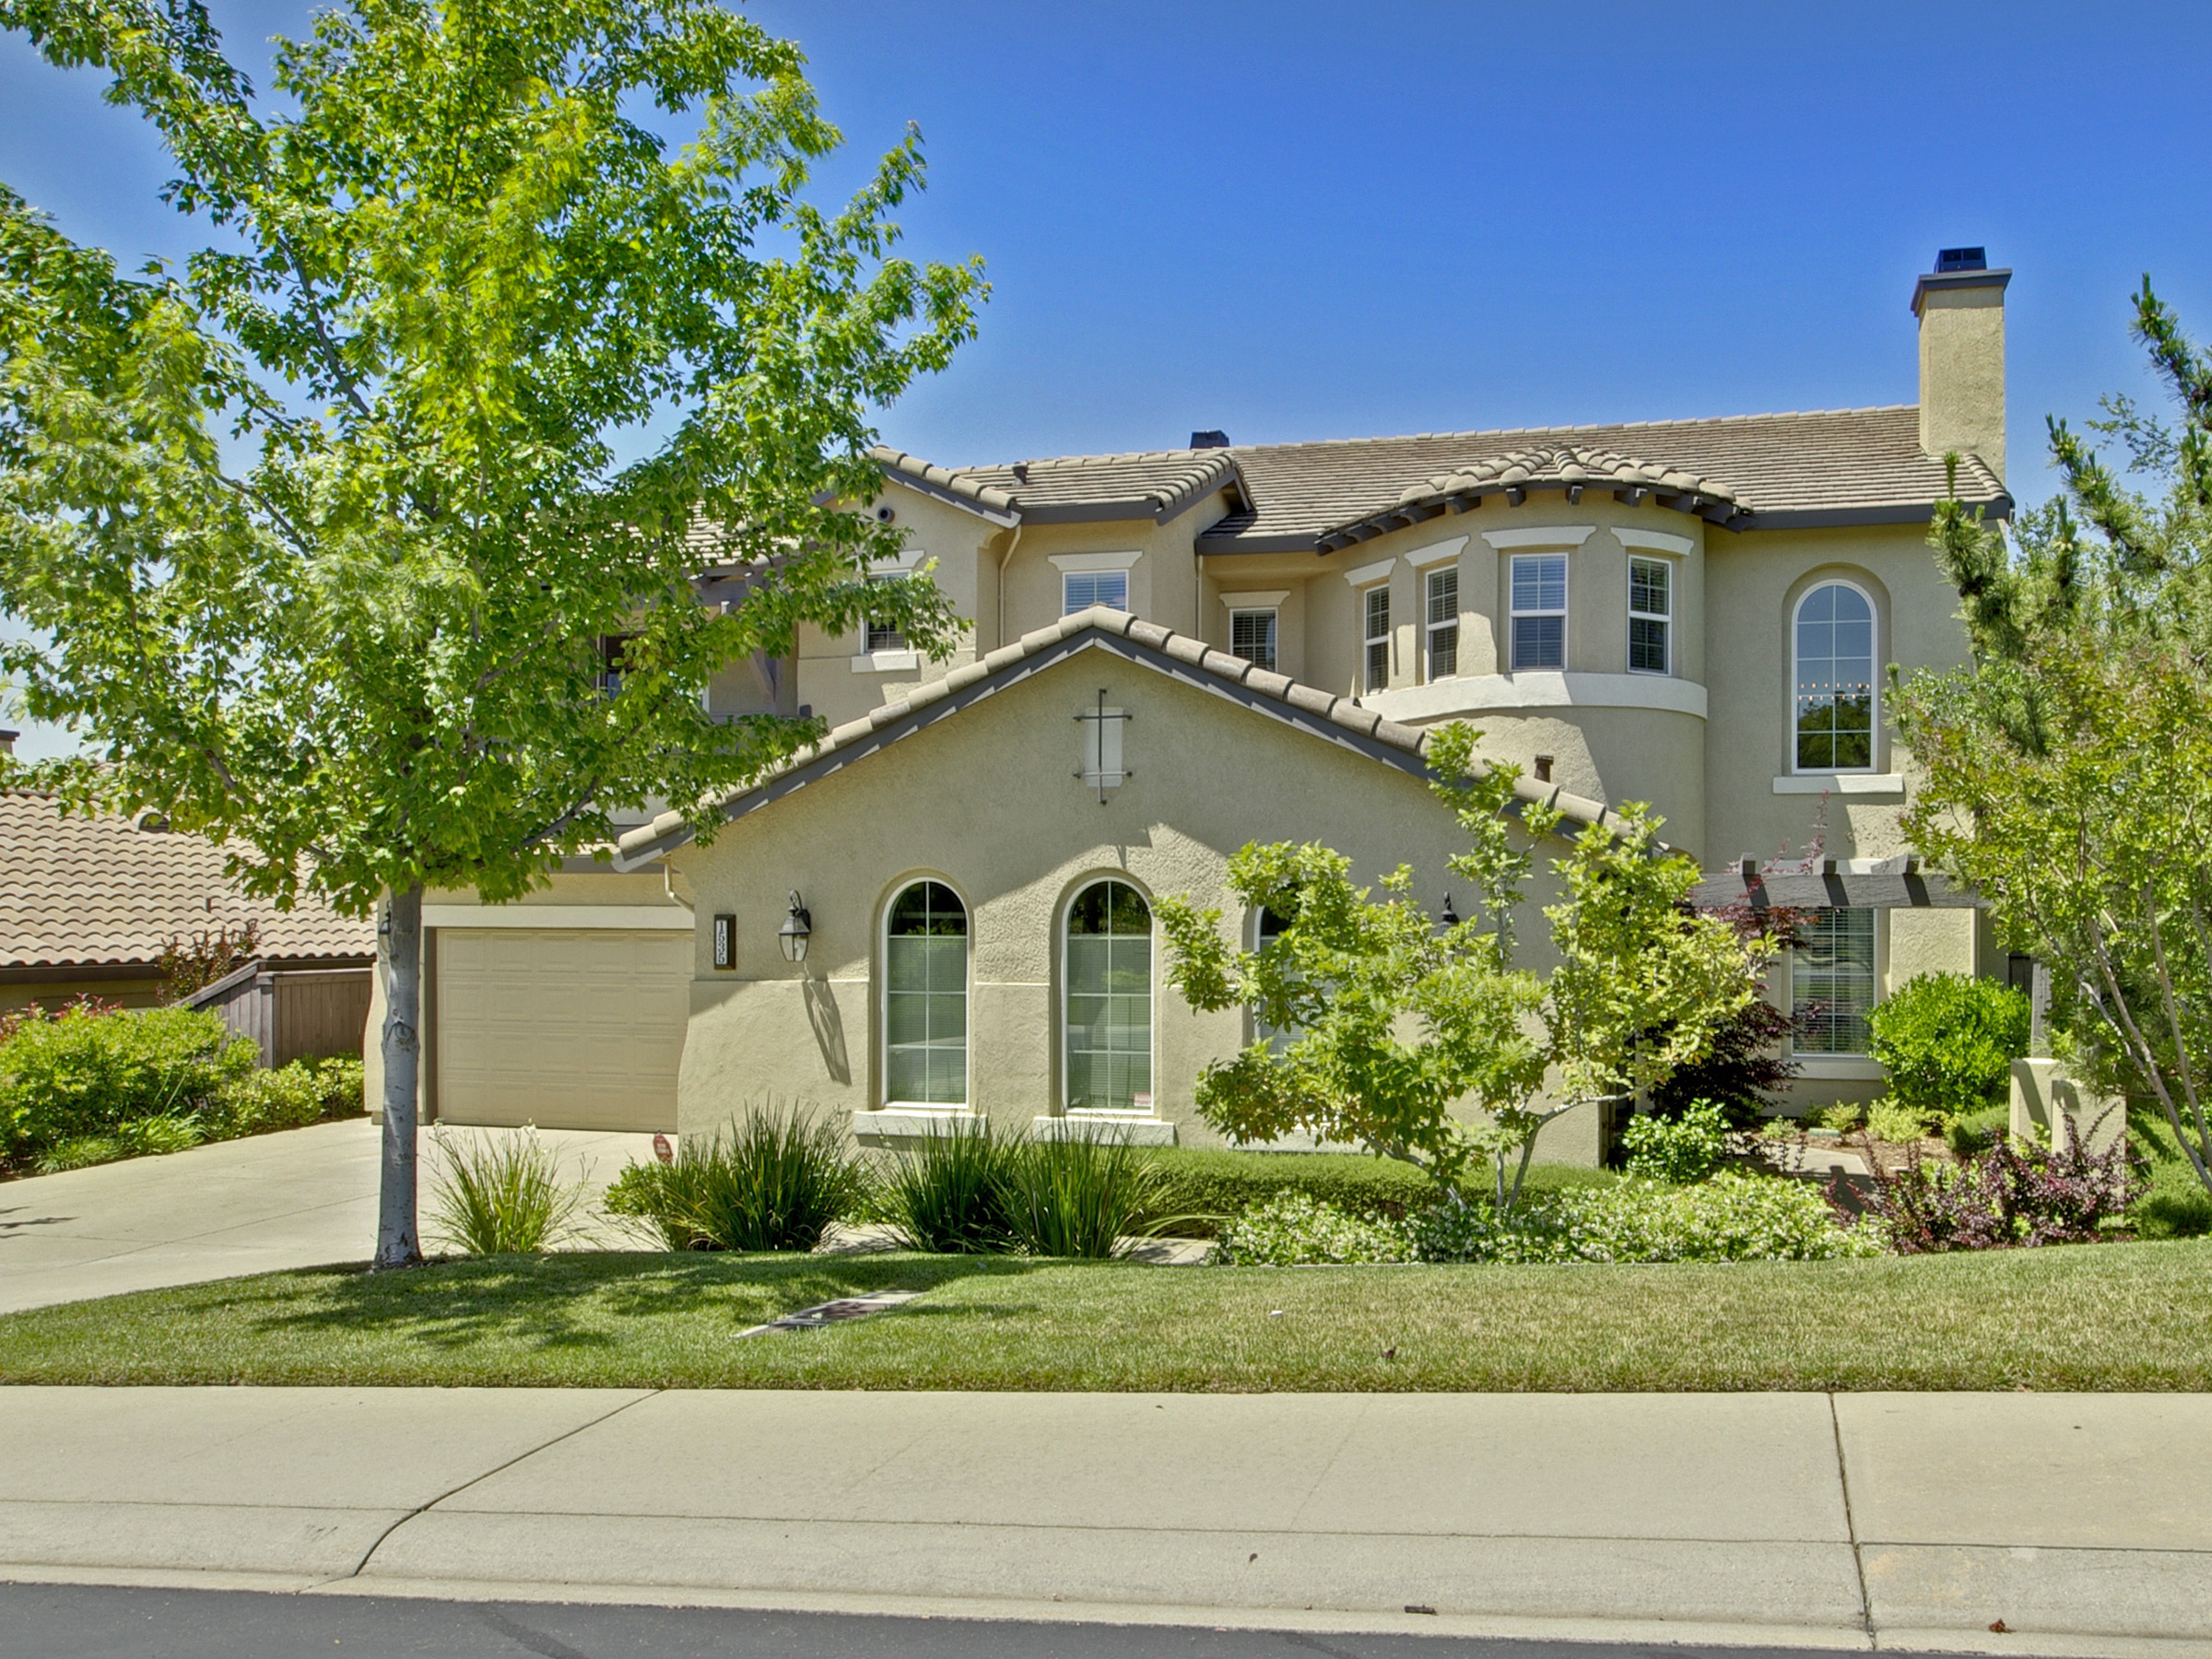 Single Family Home for Sale at 1535 Terracina Drive 1535 Terracina Dr. El Dorado Hills, California, 95762 United States